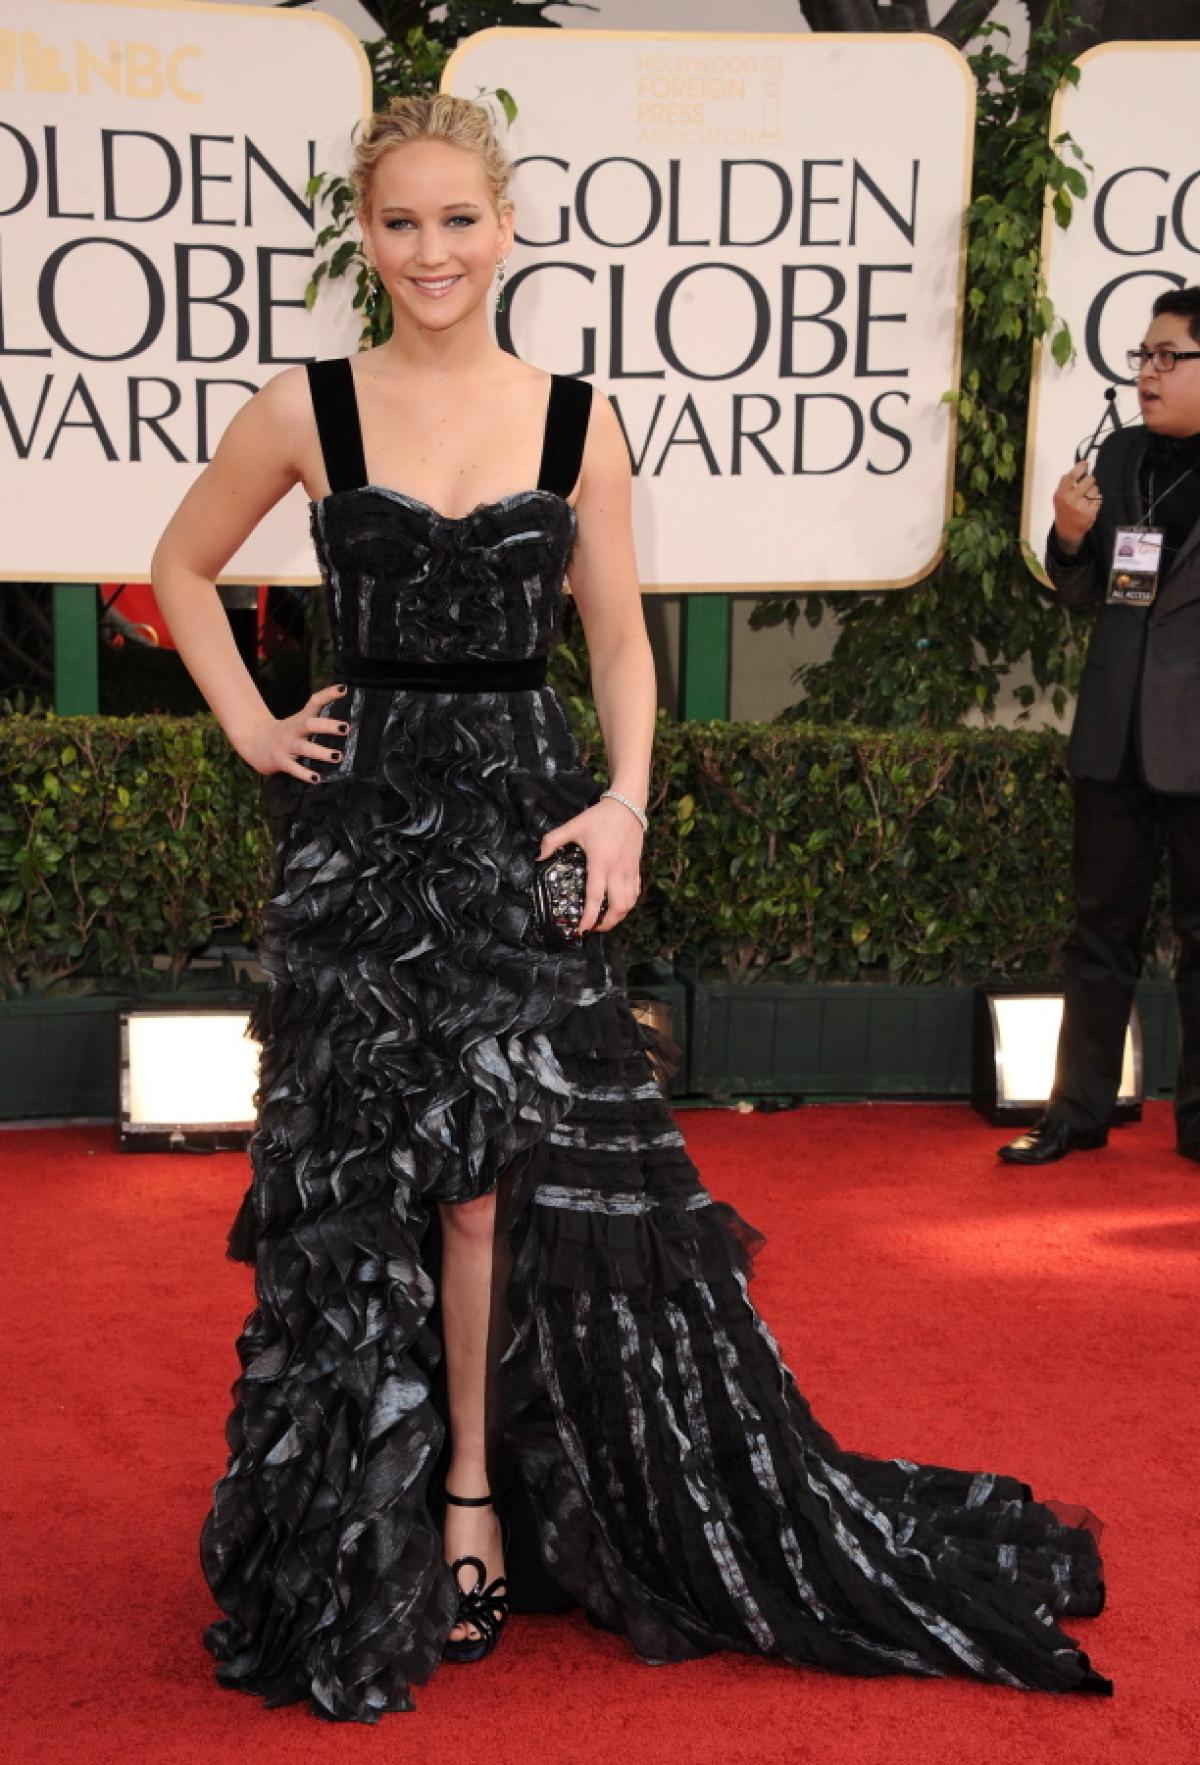 In a black ruffled Louis Vuitton gown at The Golden Globe Awards in L. A. on Jan 16, 2011